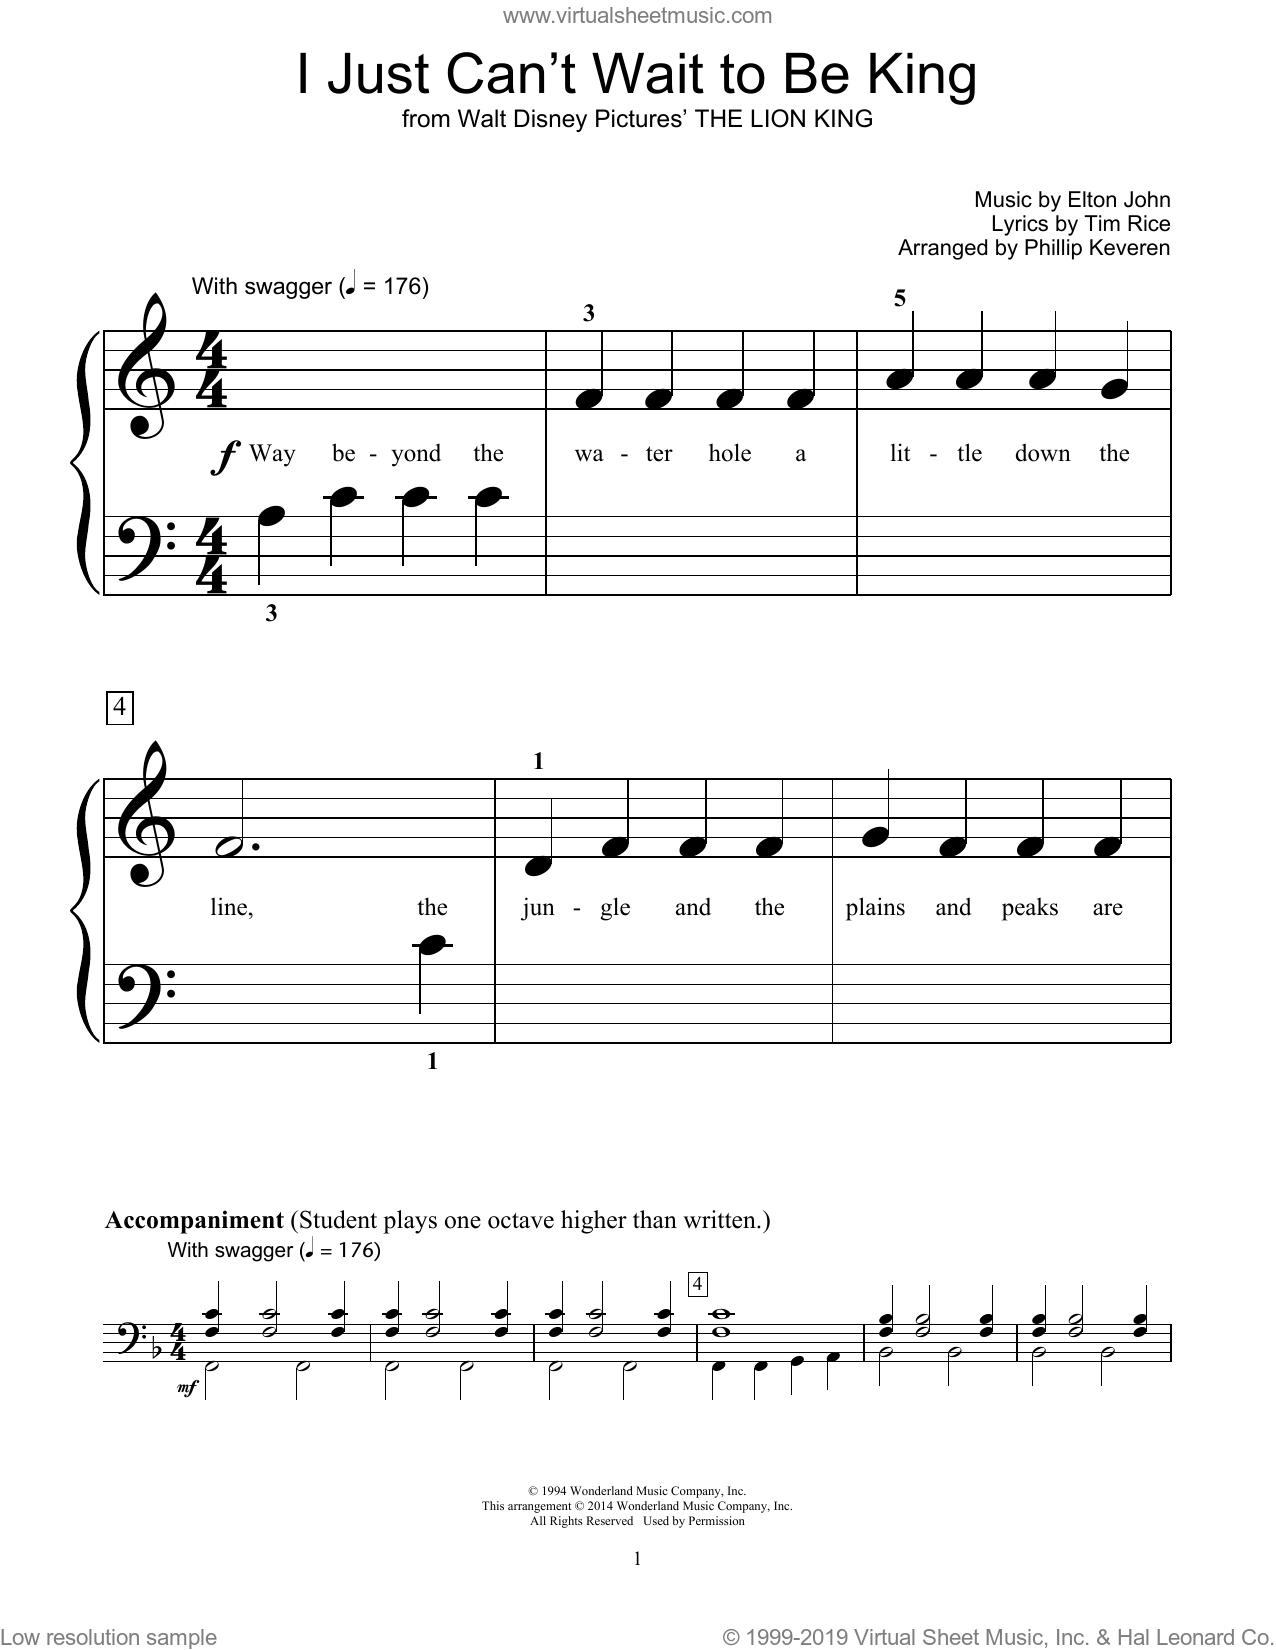 I Just Can't Wait To Be King sheet music for piano solo (elementary) by Bill Boyd, Phillip Keveren, Elton John and Tim Rice. Score Image Preview.